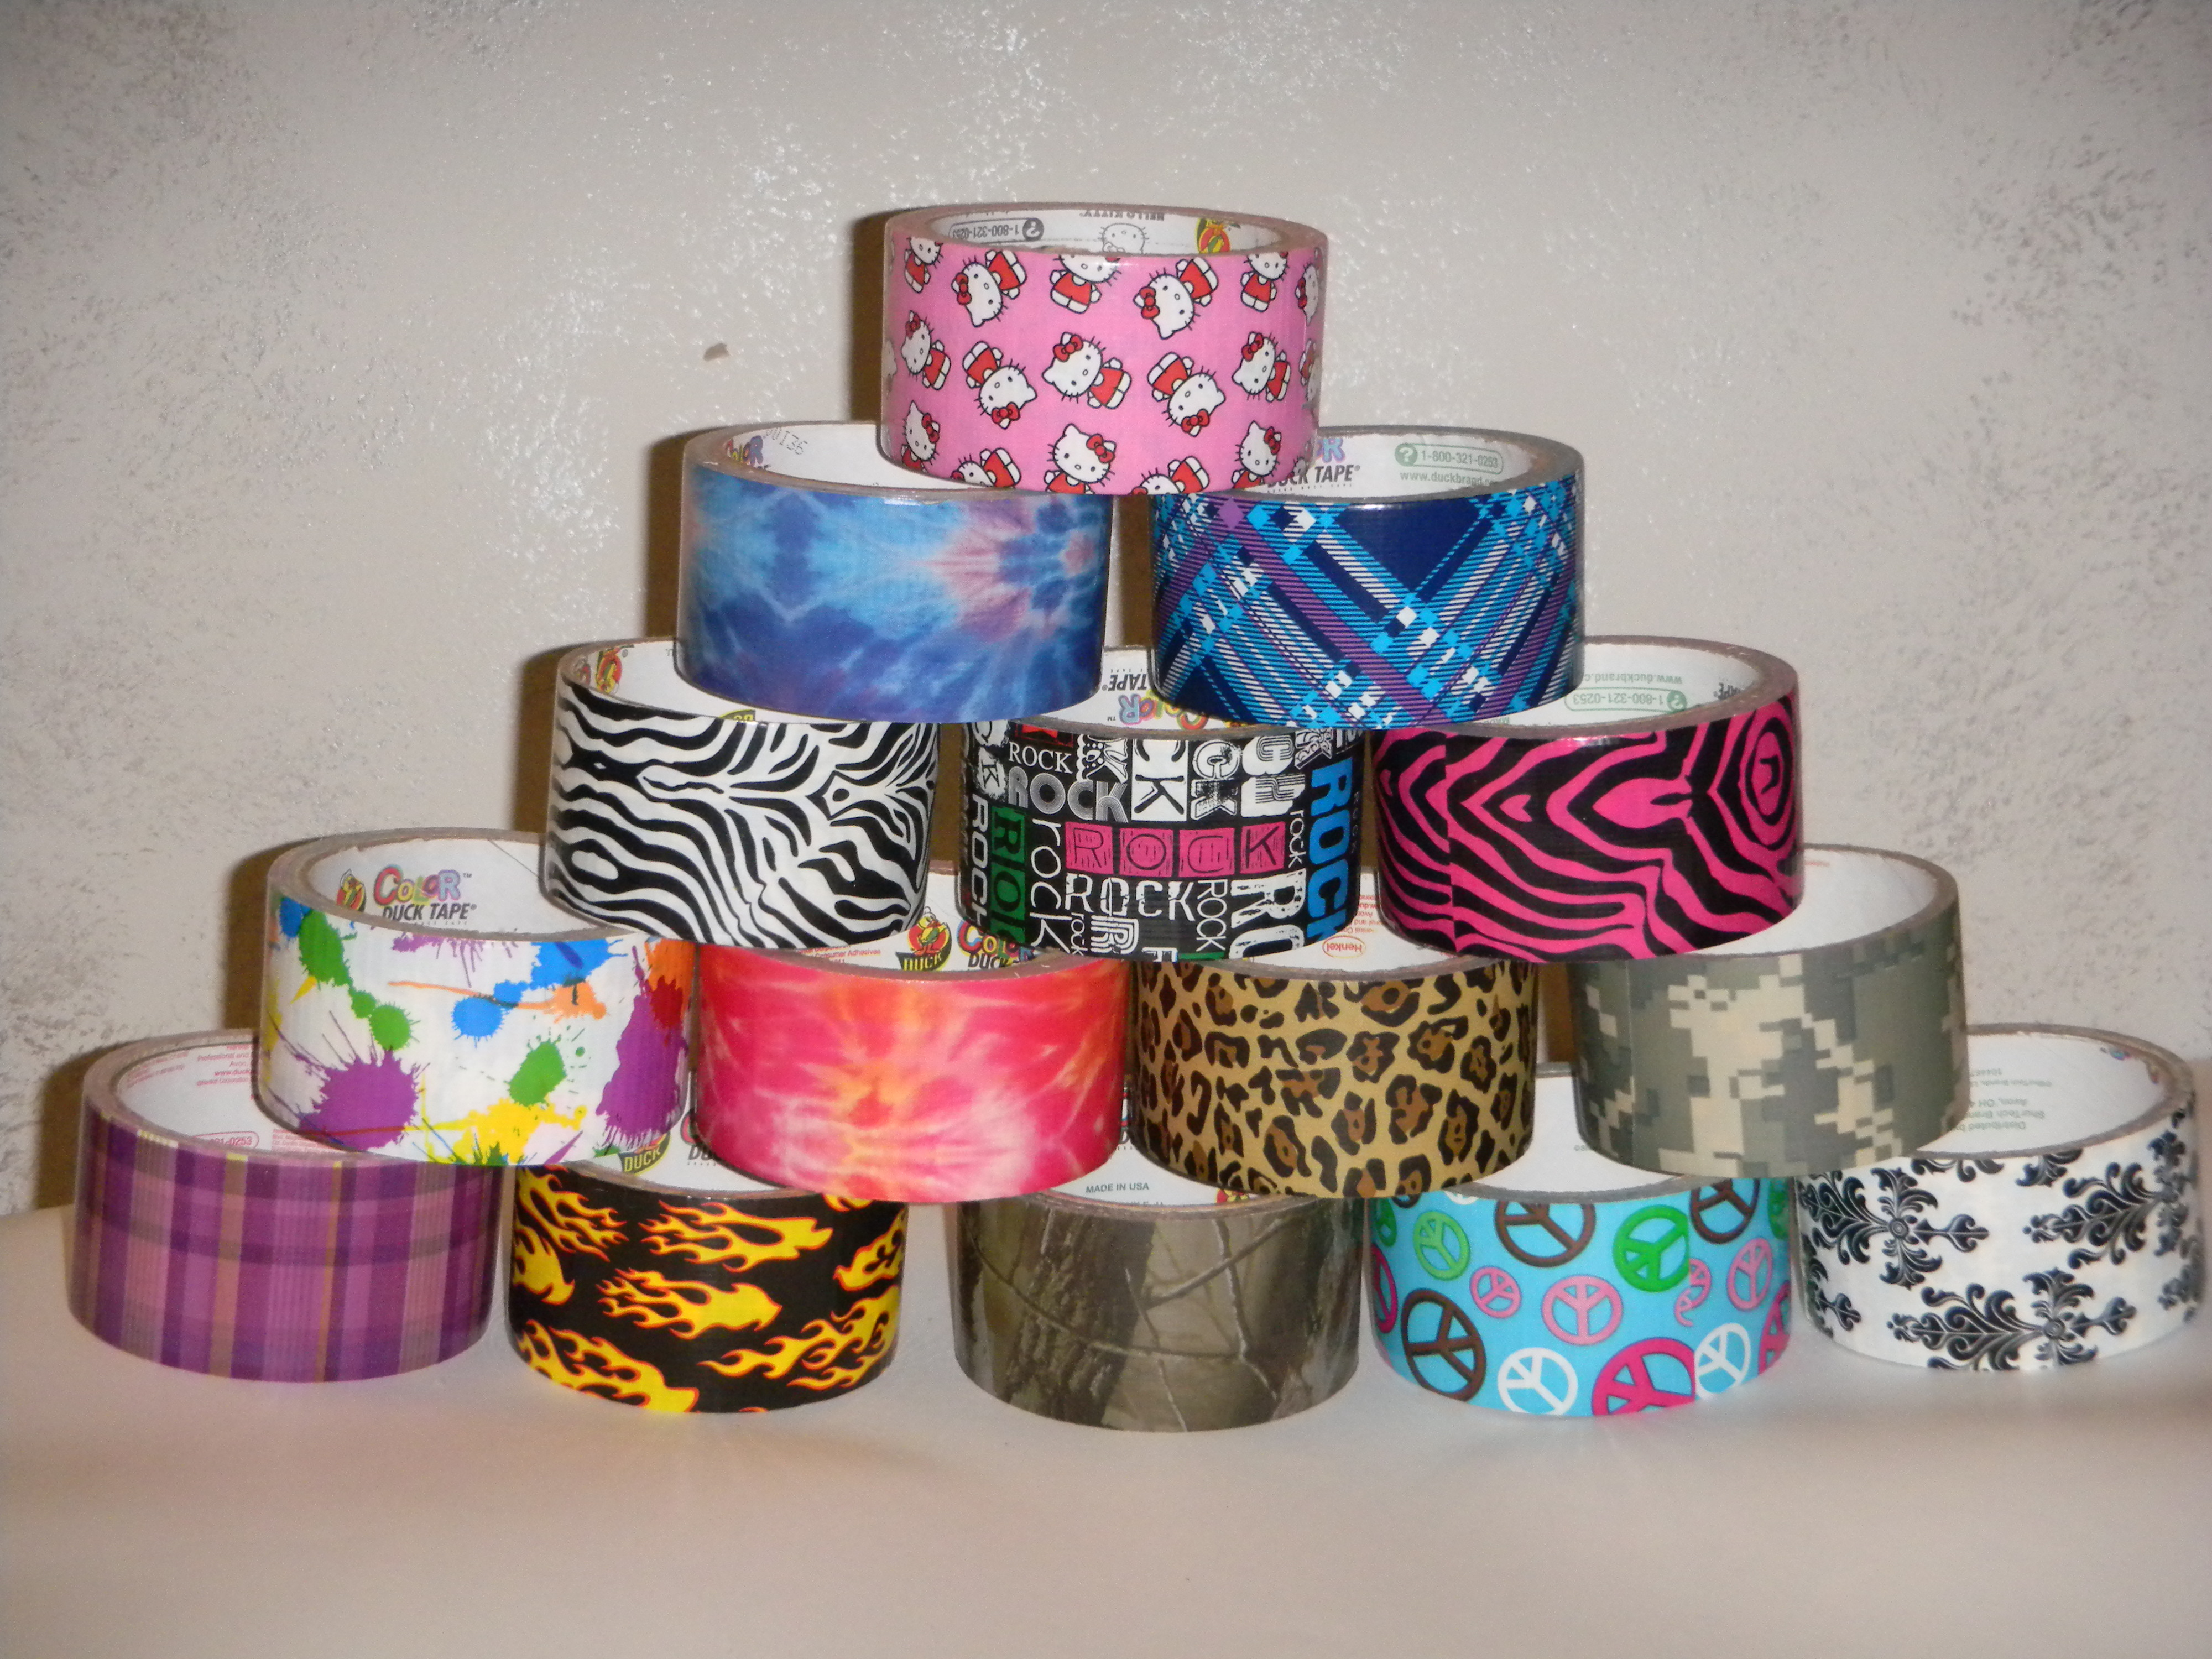 4 5 11 Tower Of Printed Duct Tape 187 Ductapewallet Com